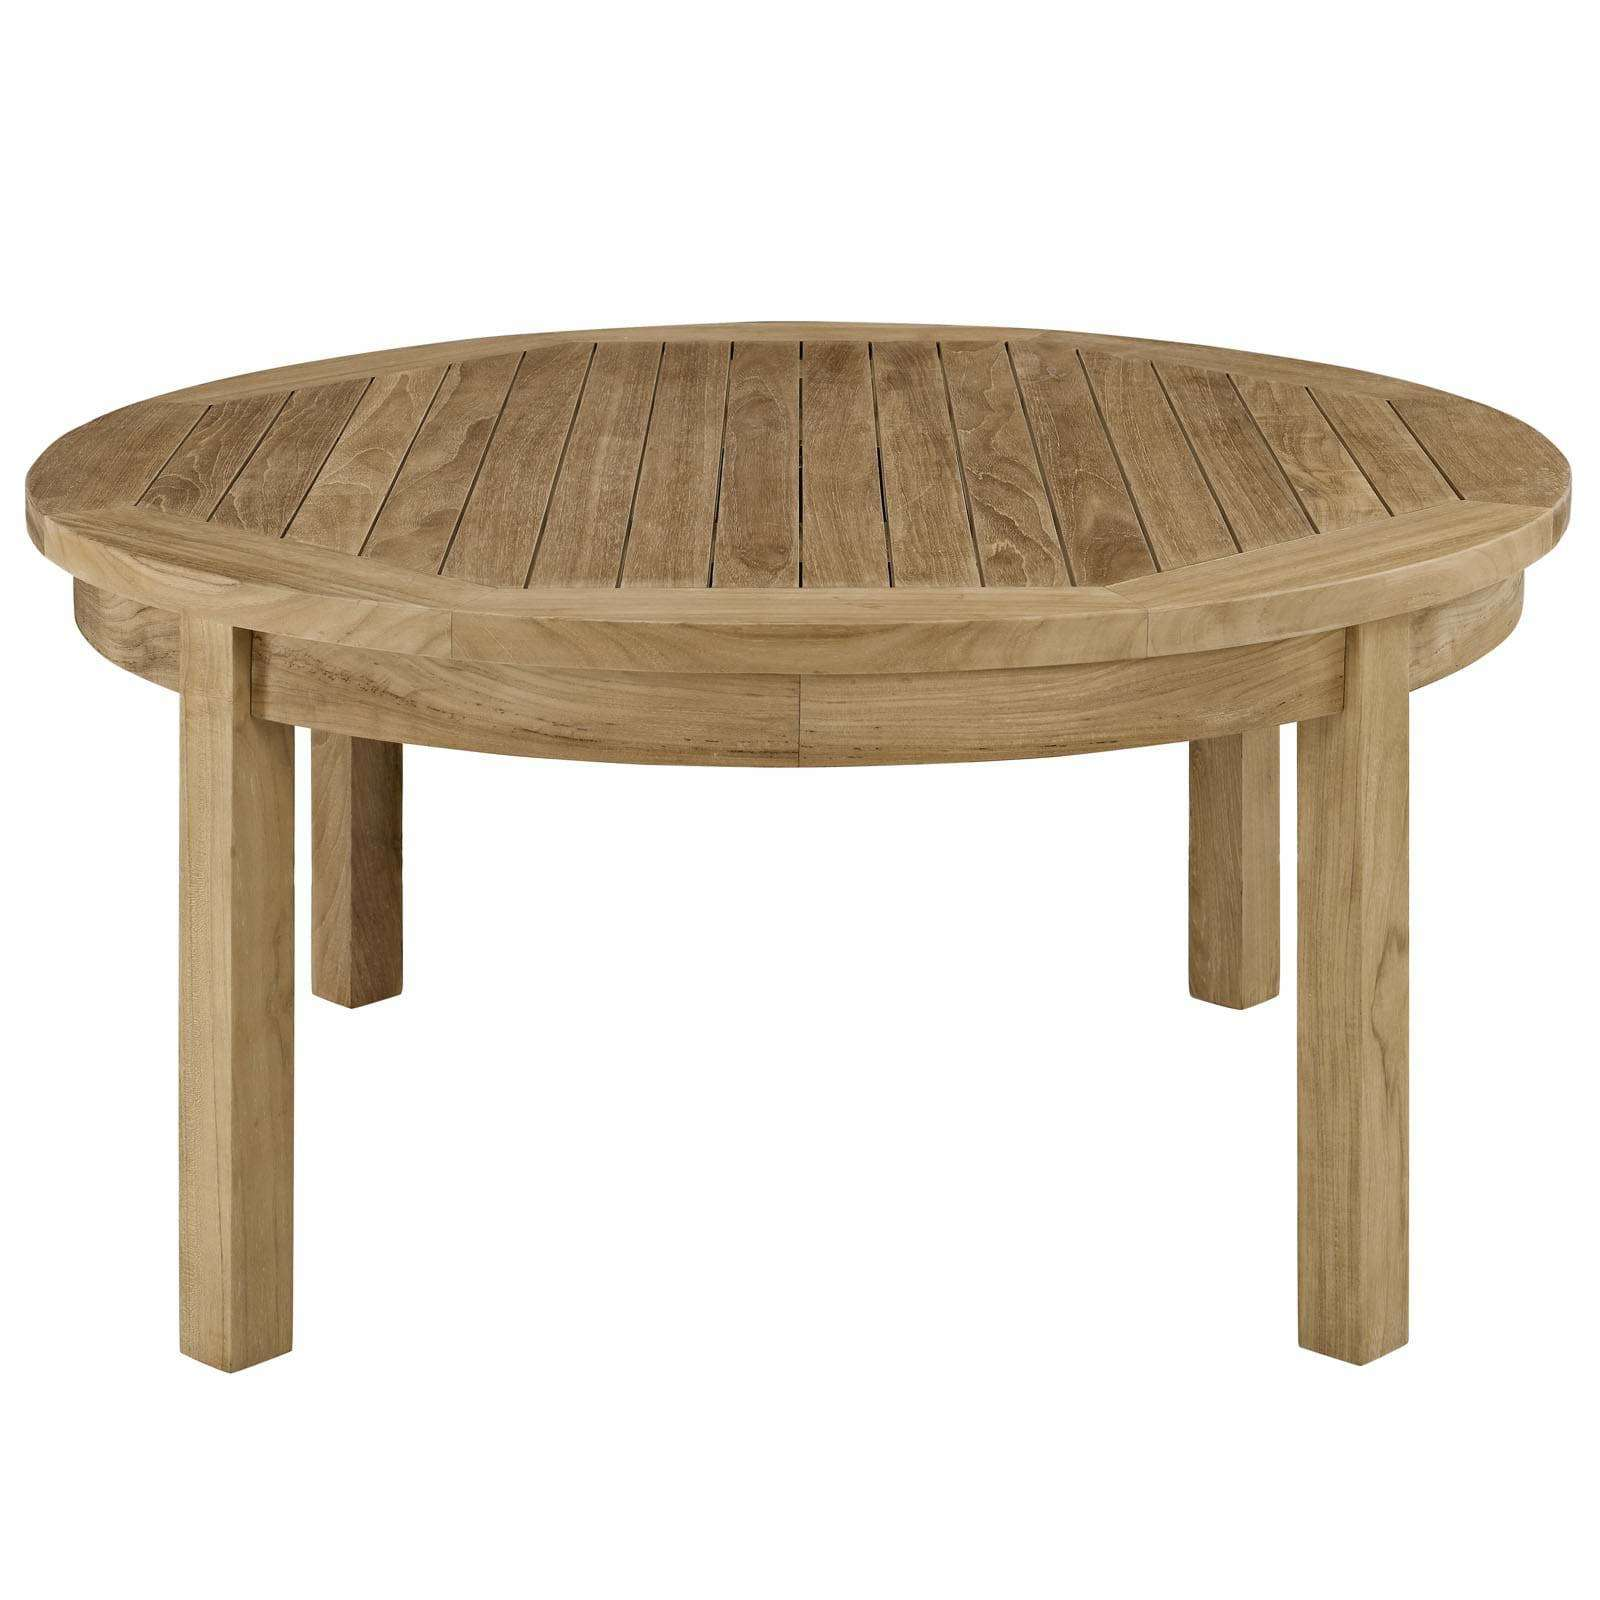 Modterior Living Room Coffee Tables Marina